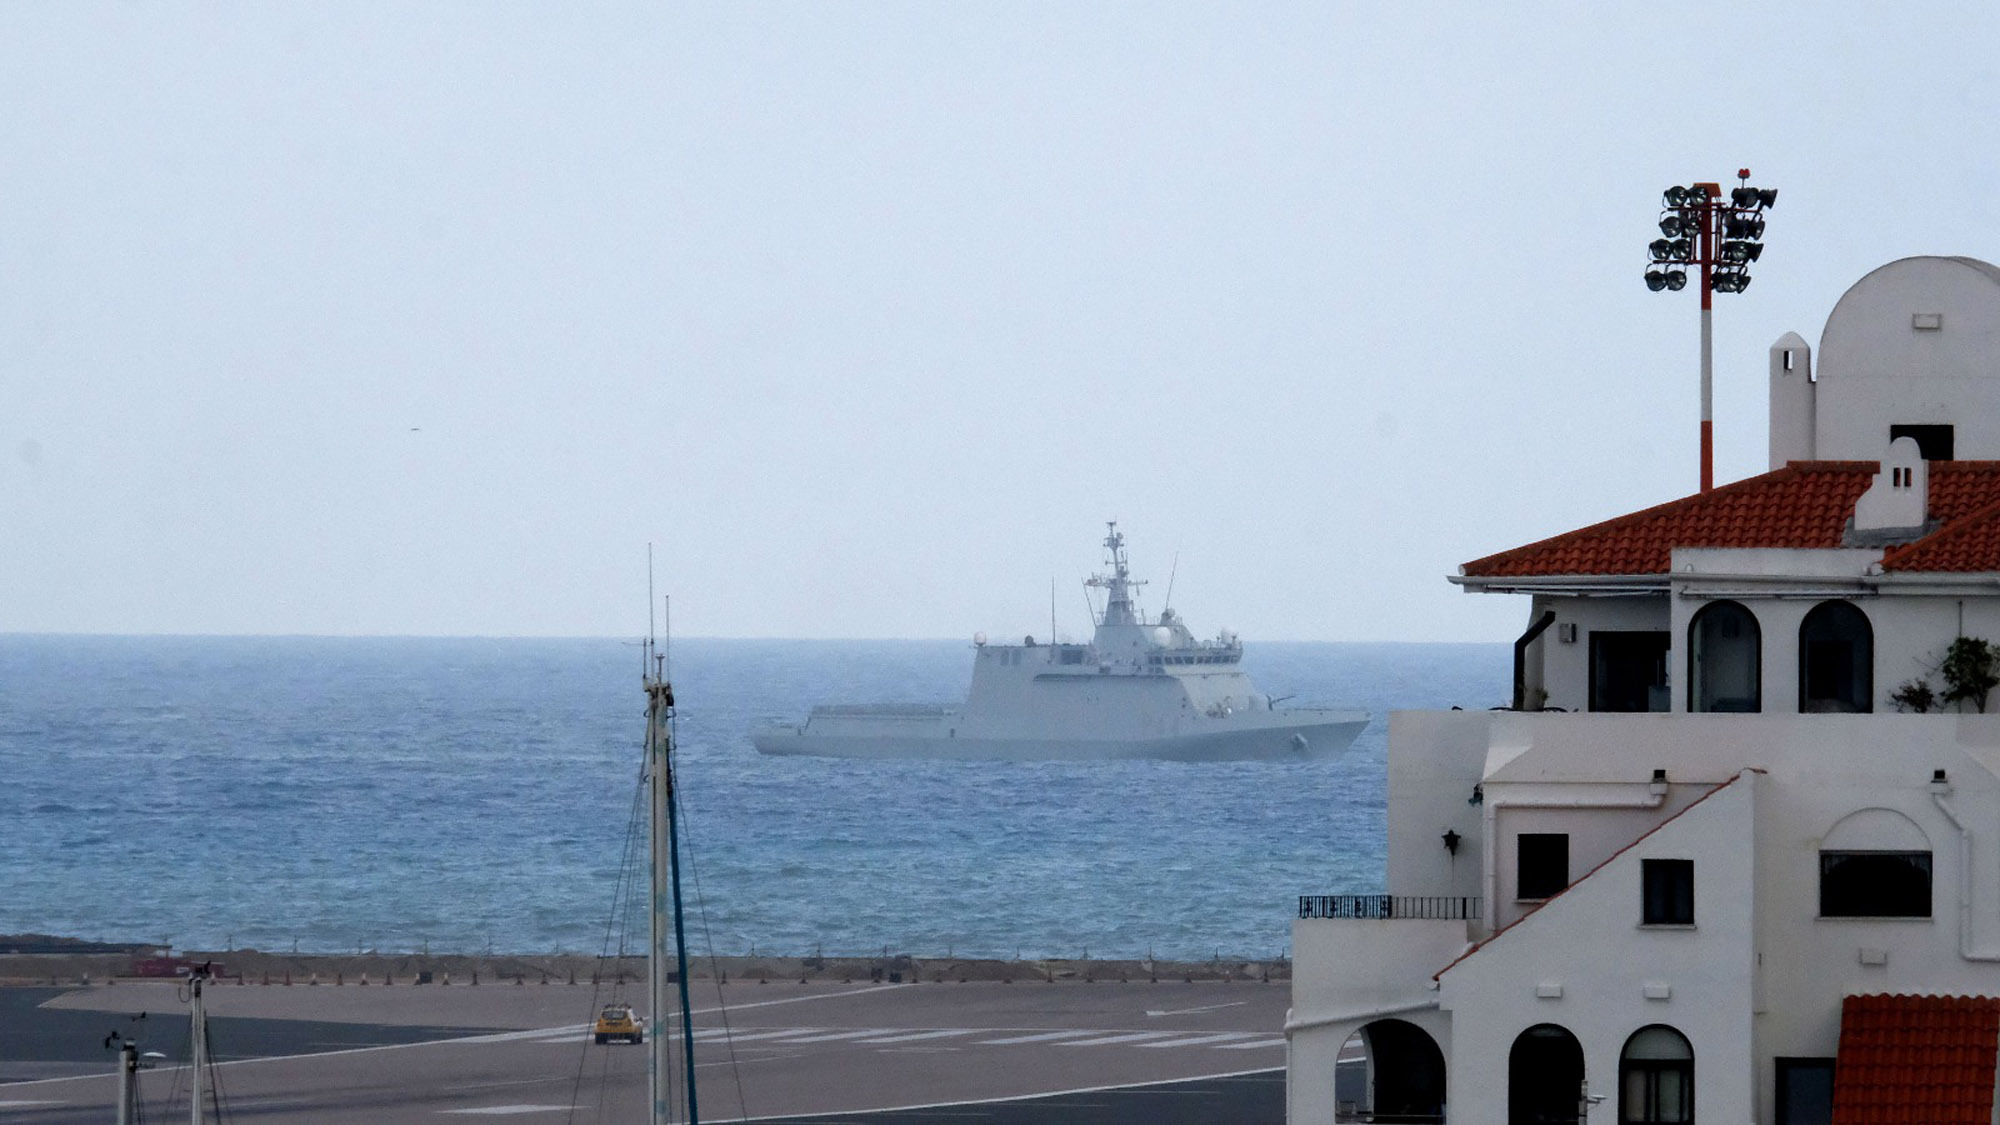 Gibraltar conflict: Royal Navy chases Spanish warship